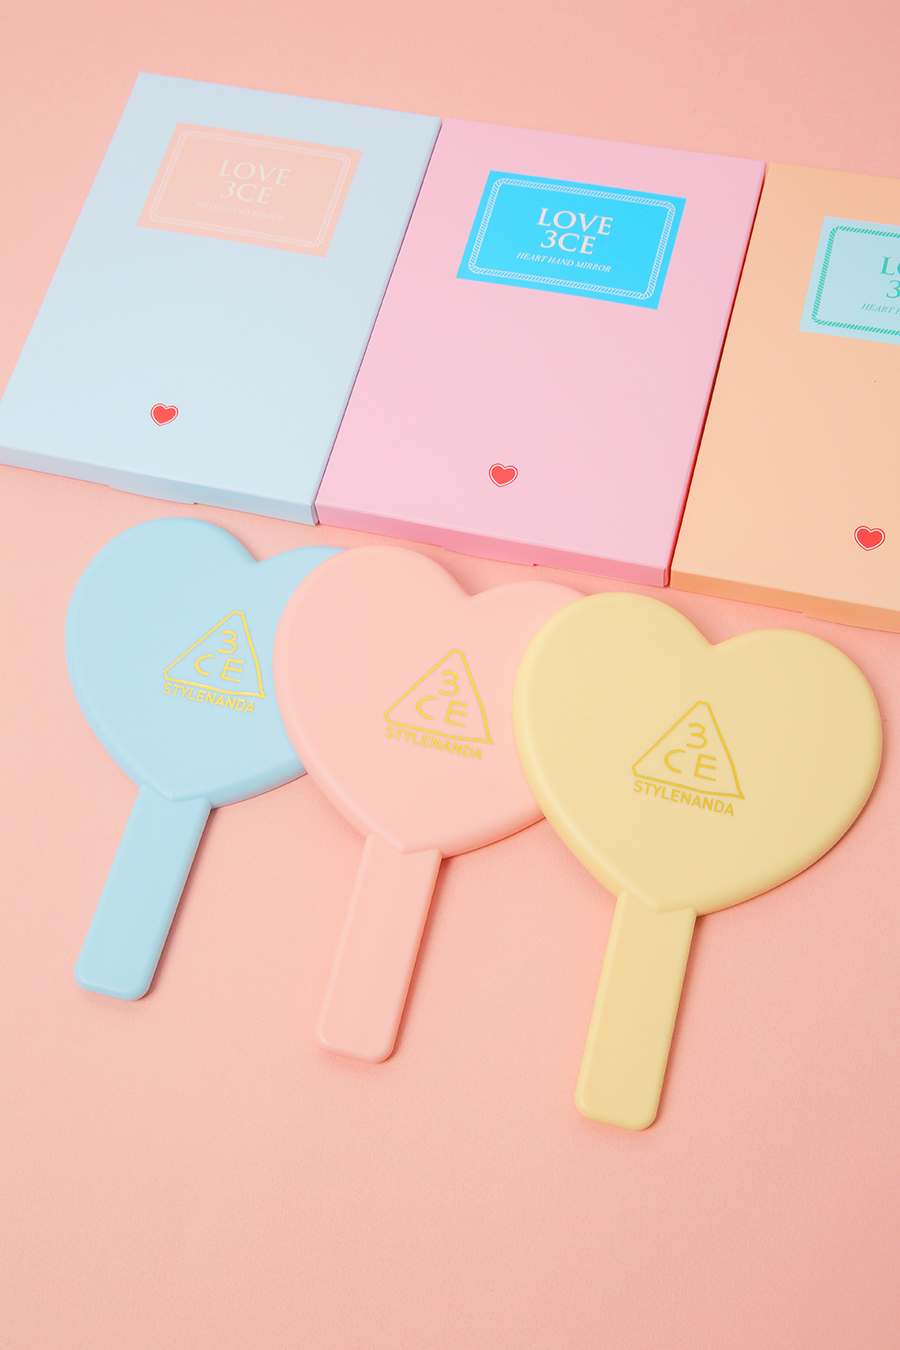 【3CE】LOVE 3CE HEART HAND MIRROR